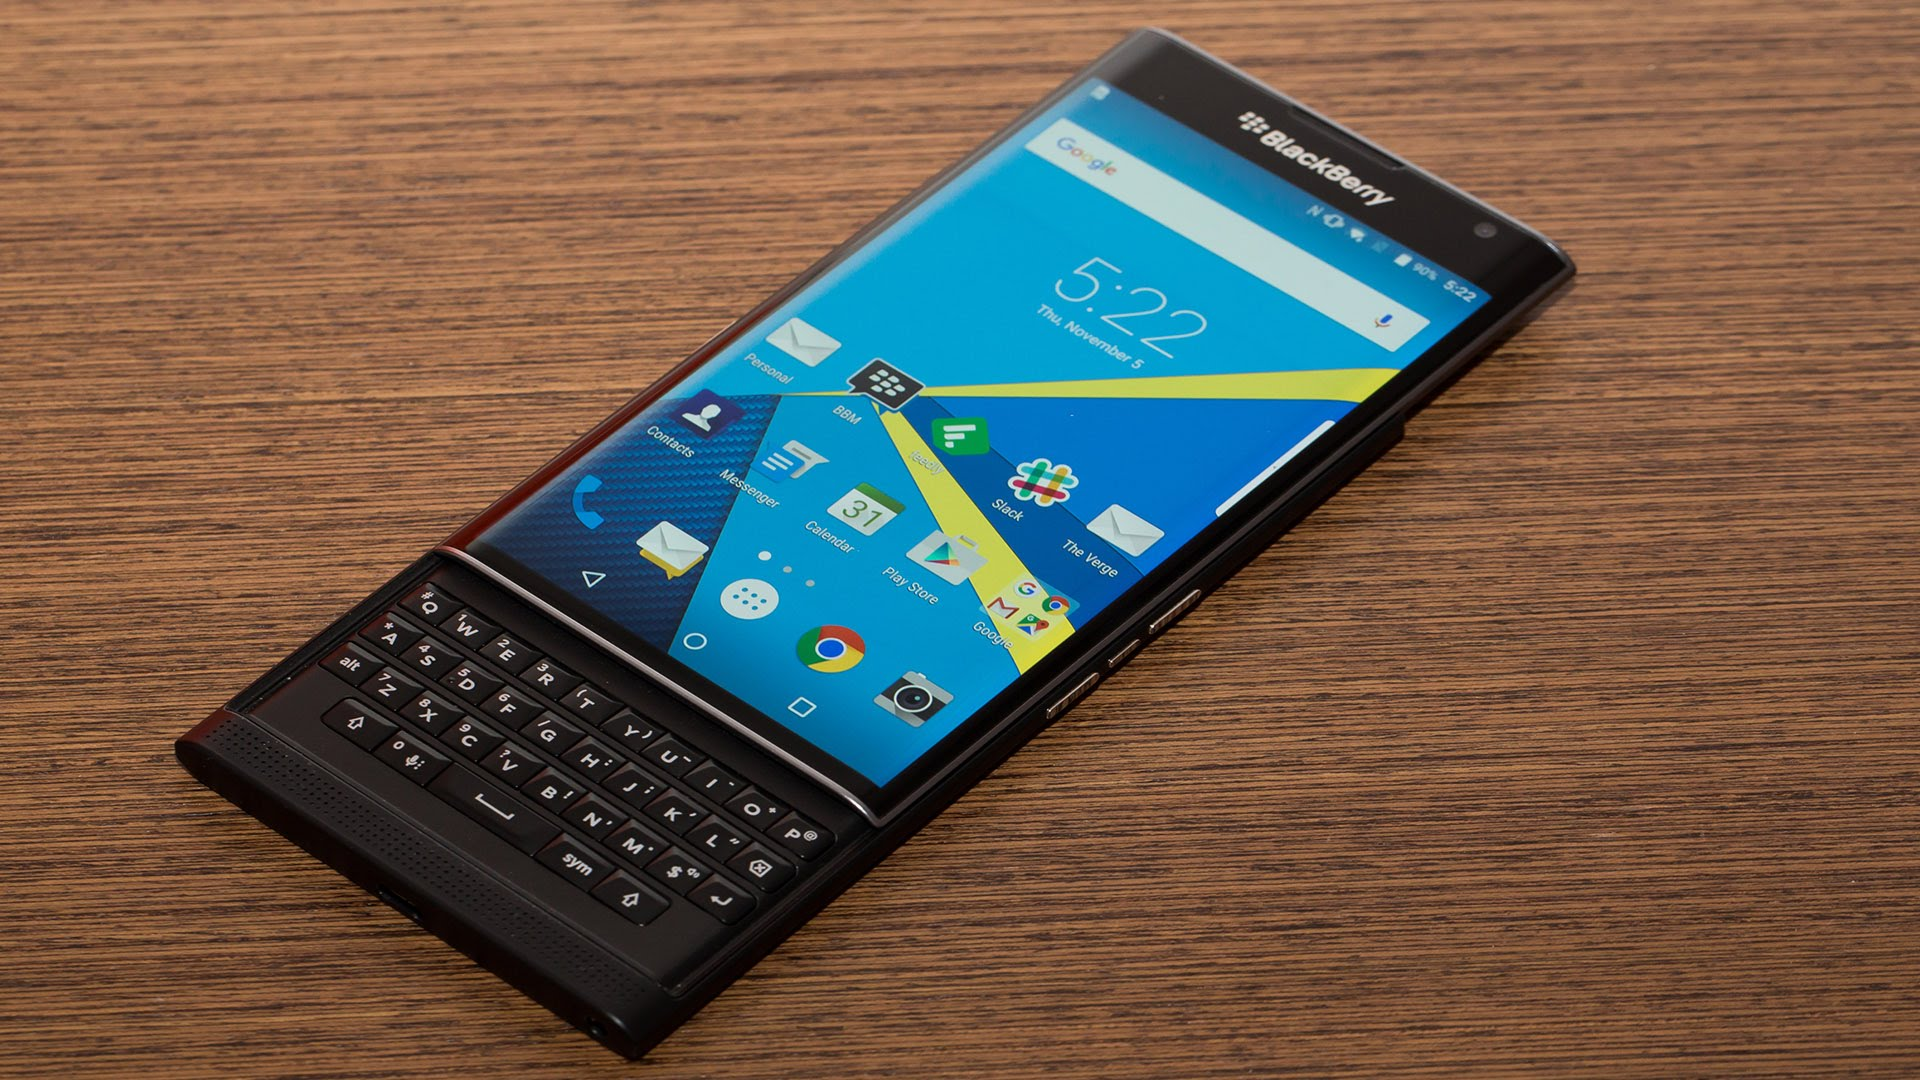 BlackBerry Priv LG G2 Marshmallow 1